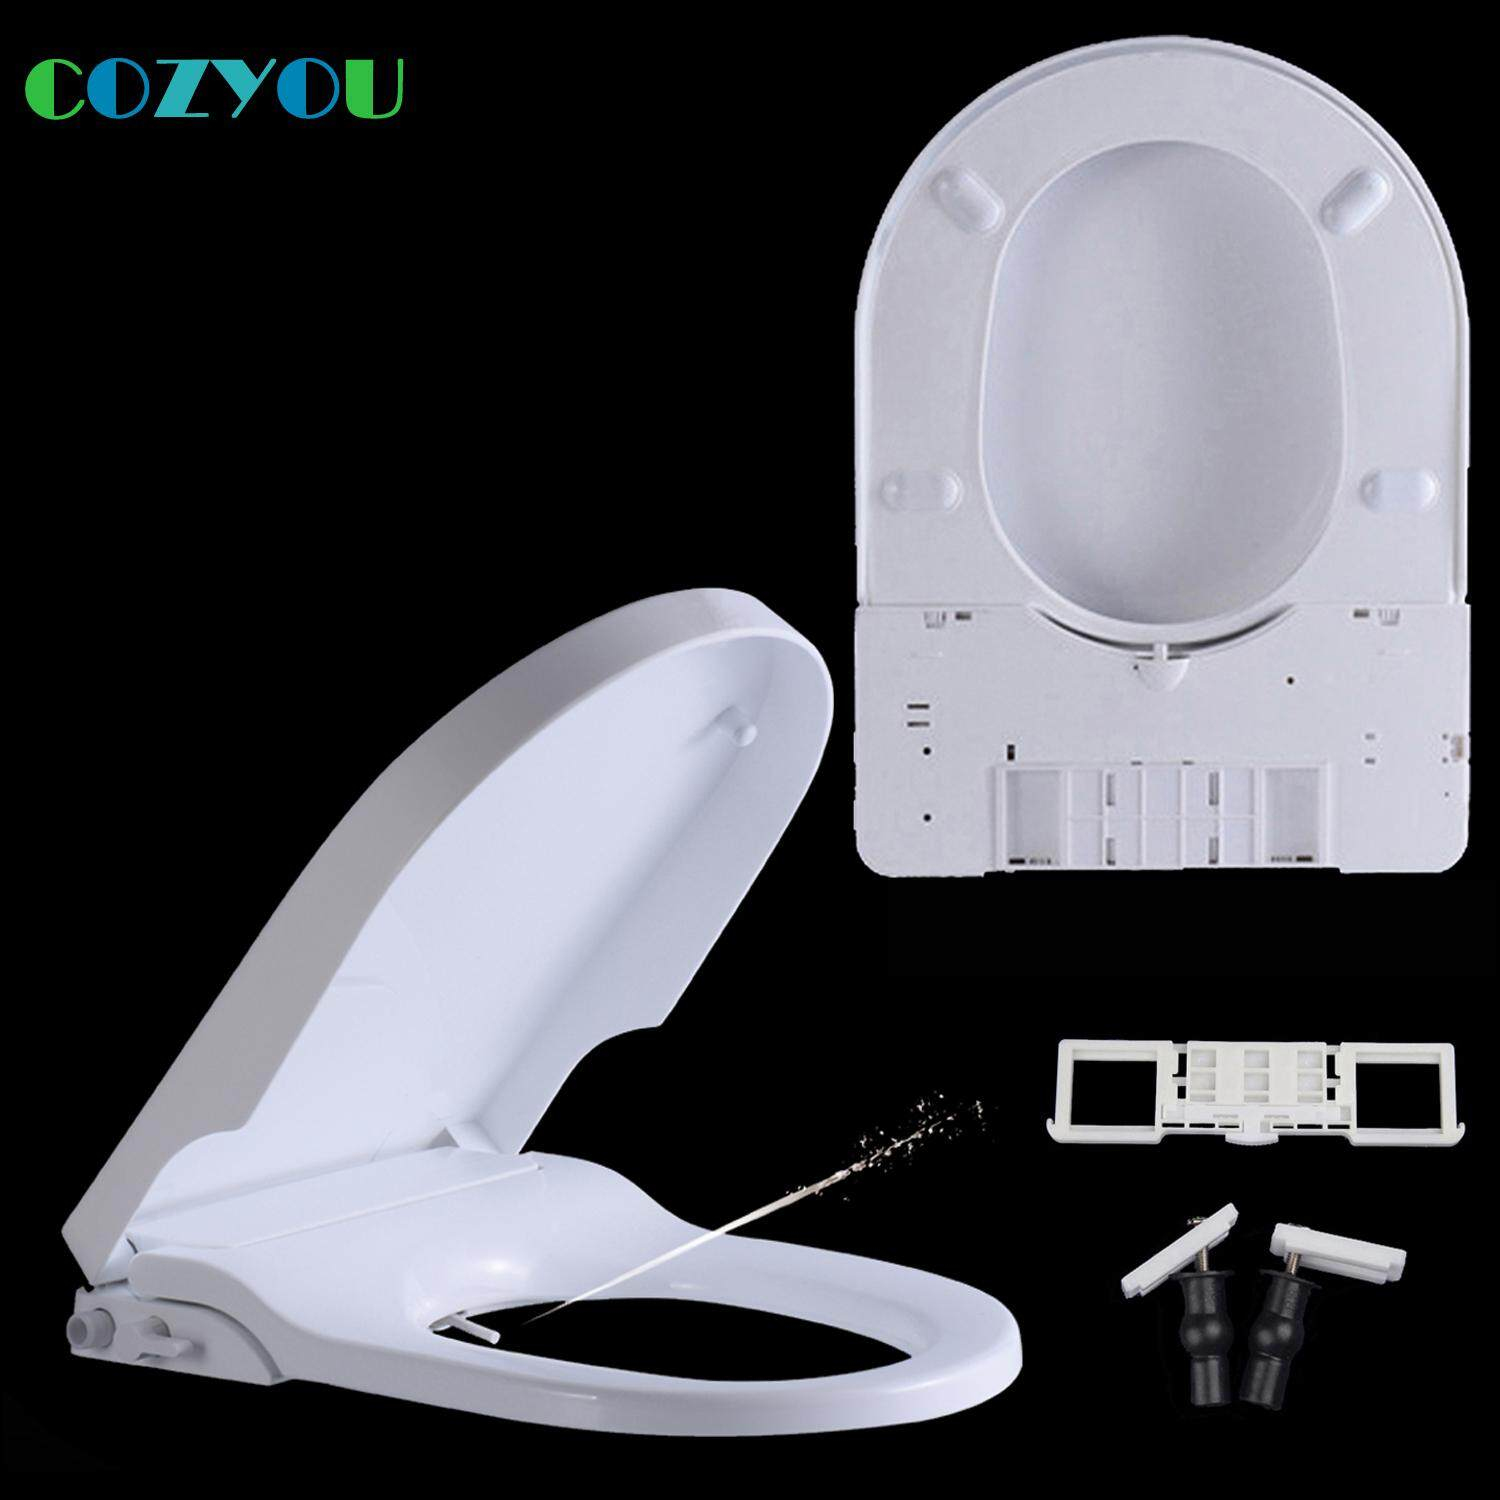 Thicken U shaped intelligent Toilet seat Female Washing Bidet Nozzle Slow close Quick Release Easy Cleaning white PP board Slow Closed wc lid GBP1703BSU